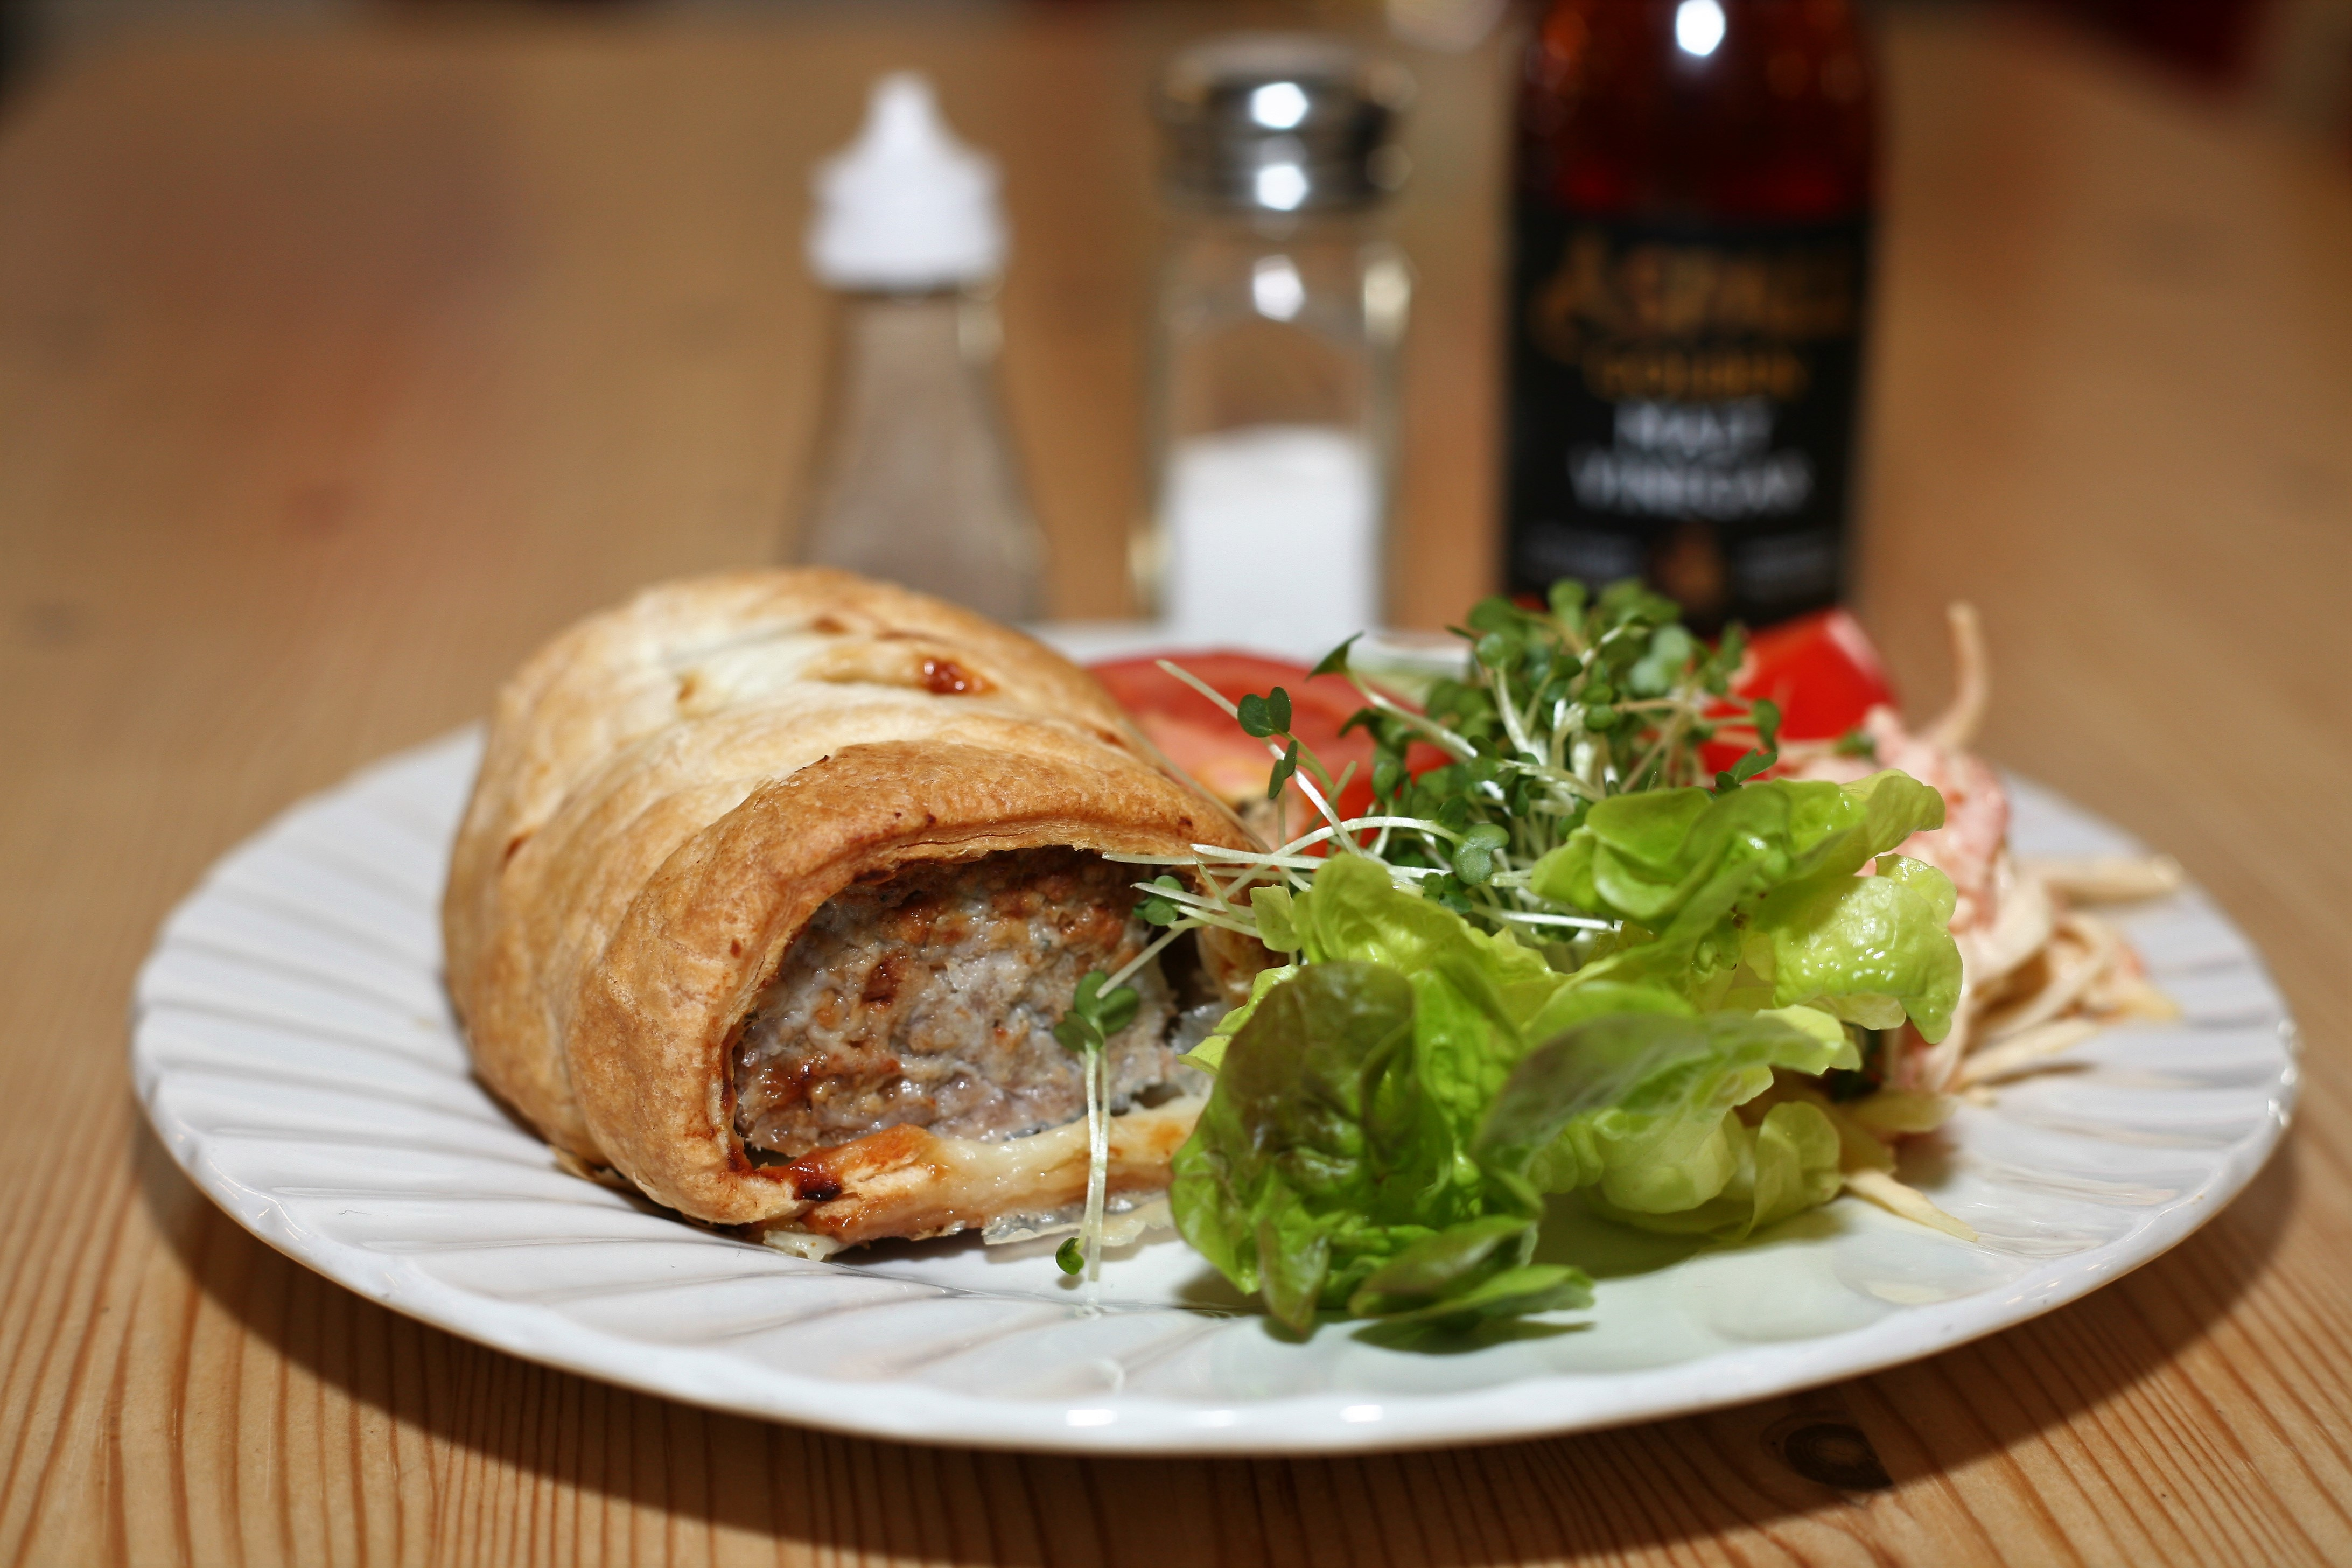 Very large sausage roll, a favourite